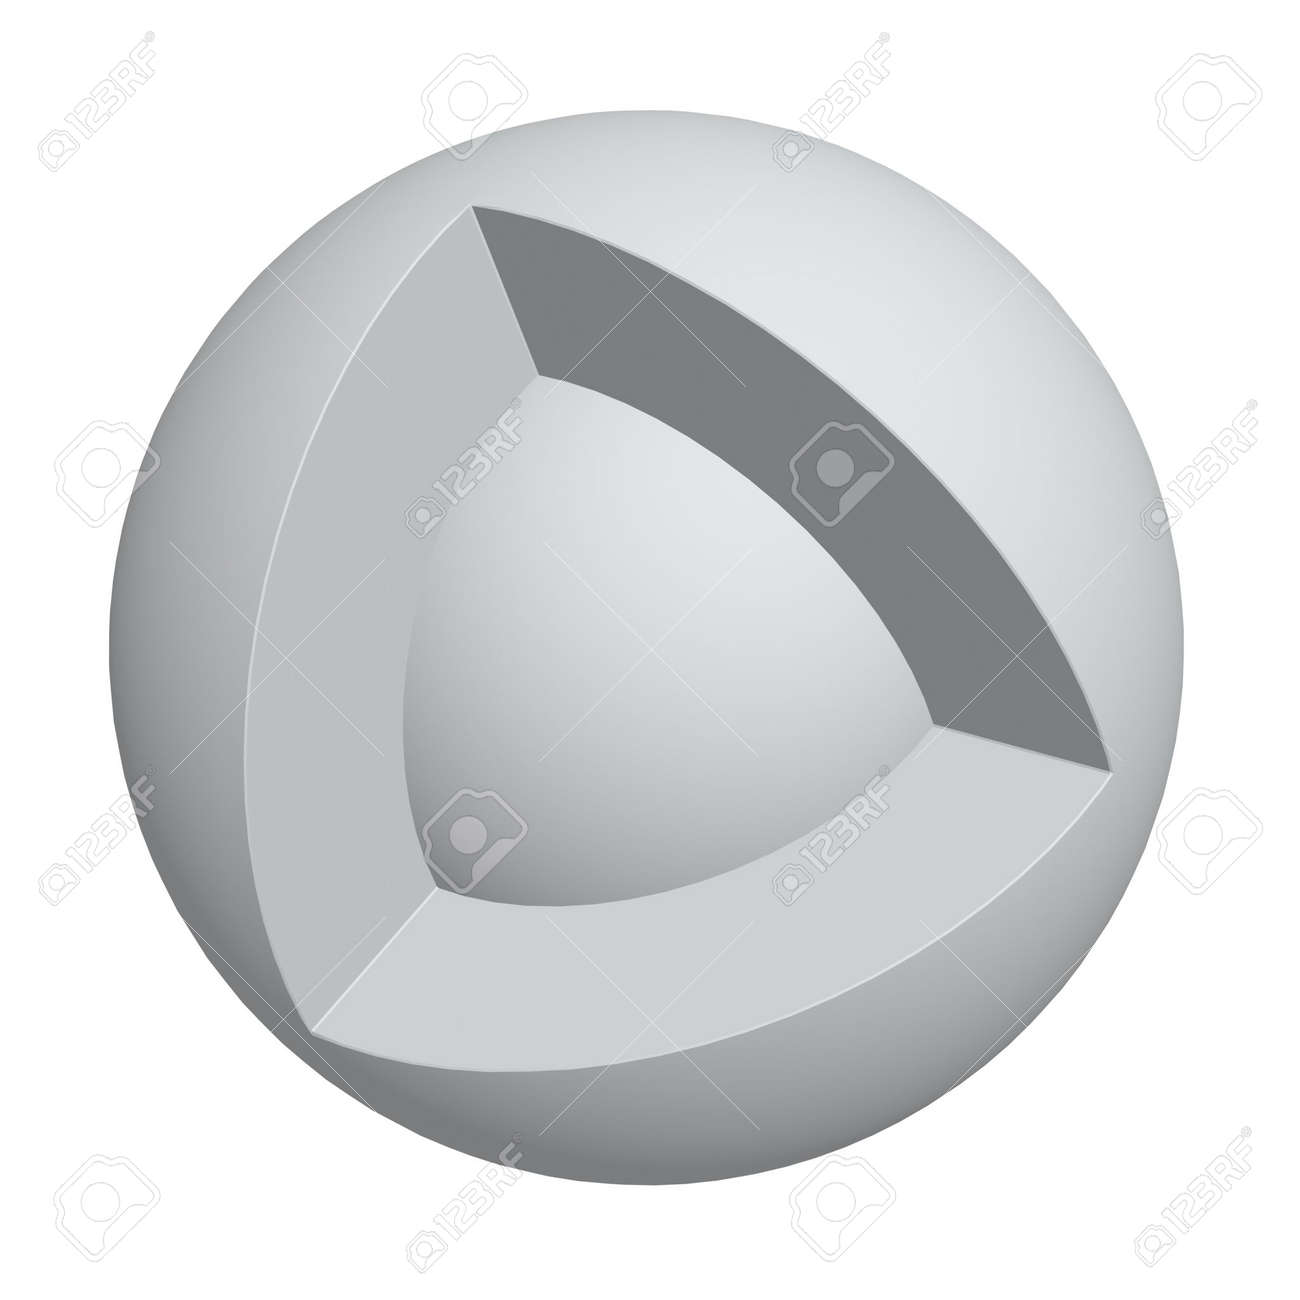 core of sphere isolated on white background Stock Photo - 4840995